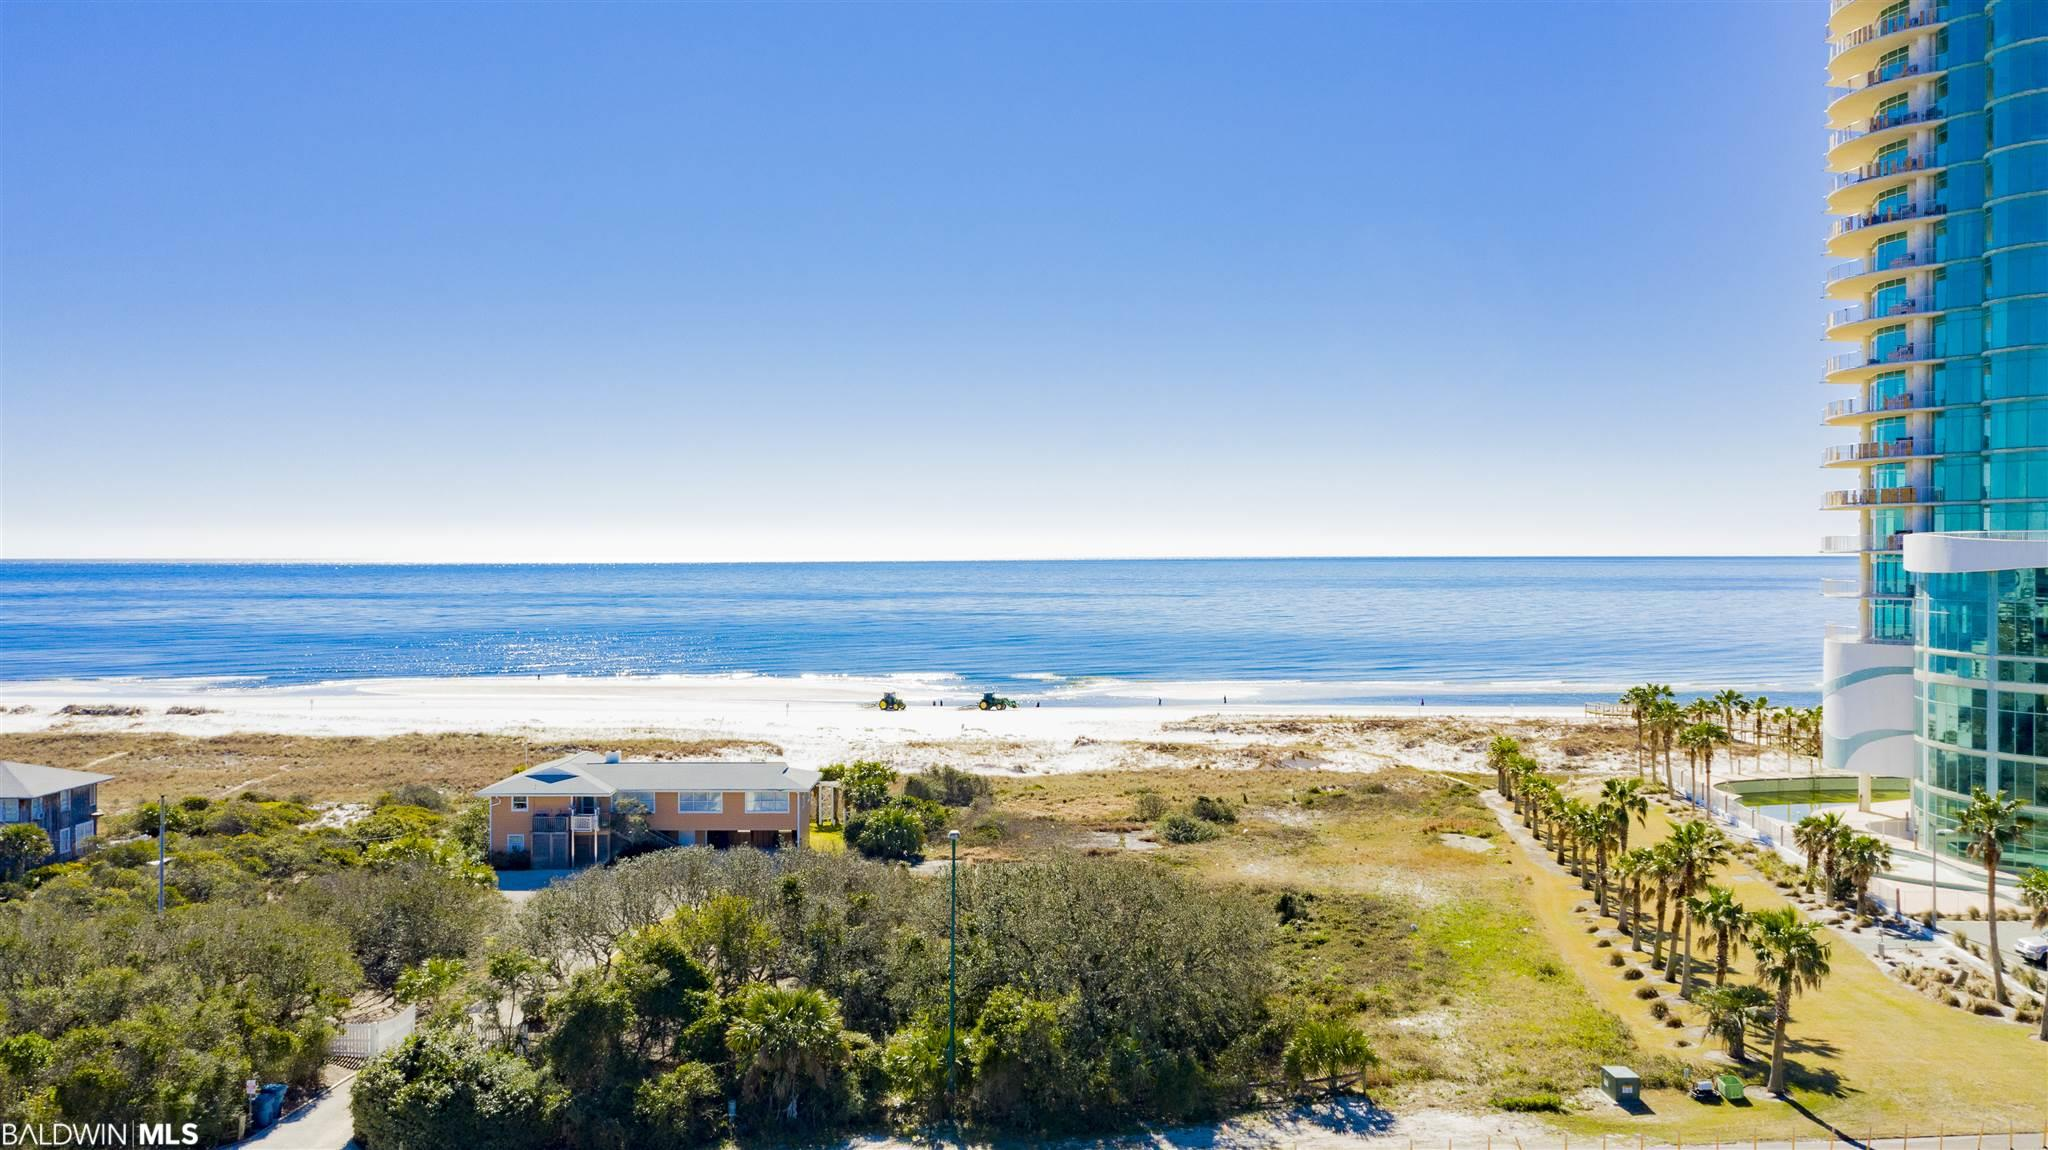 Your own piece of paradise! This property is 1.48 acres directly on the Gulf of Mexico. Build your dream home with incredible views and a great location. Convenient to shopping and restaurants, it would be hard to find a more perfect location! Call today for more information.